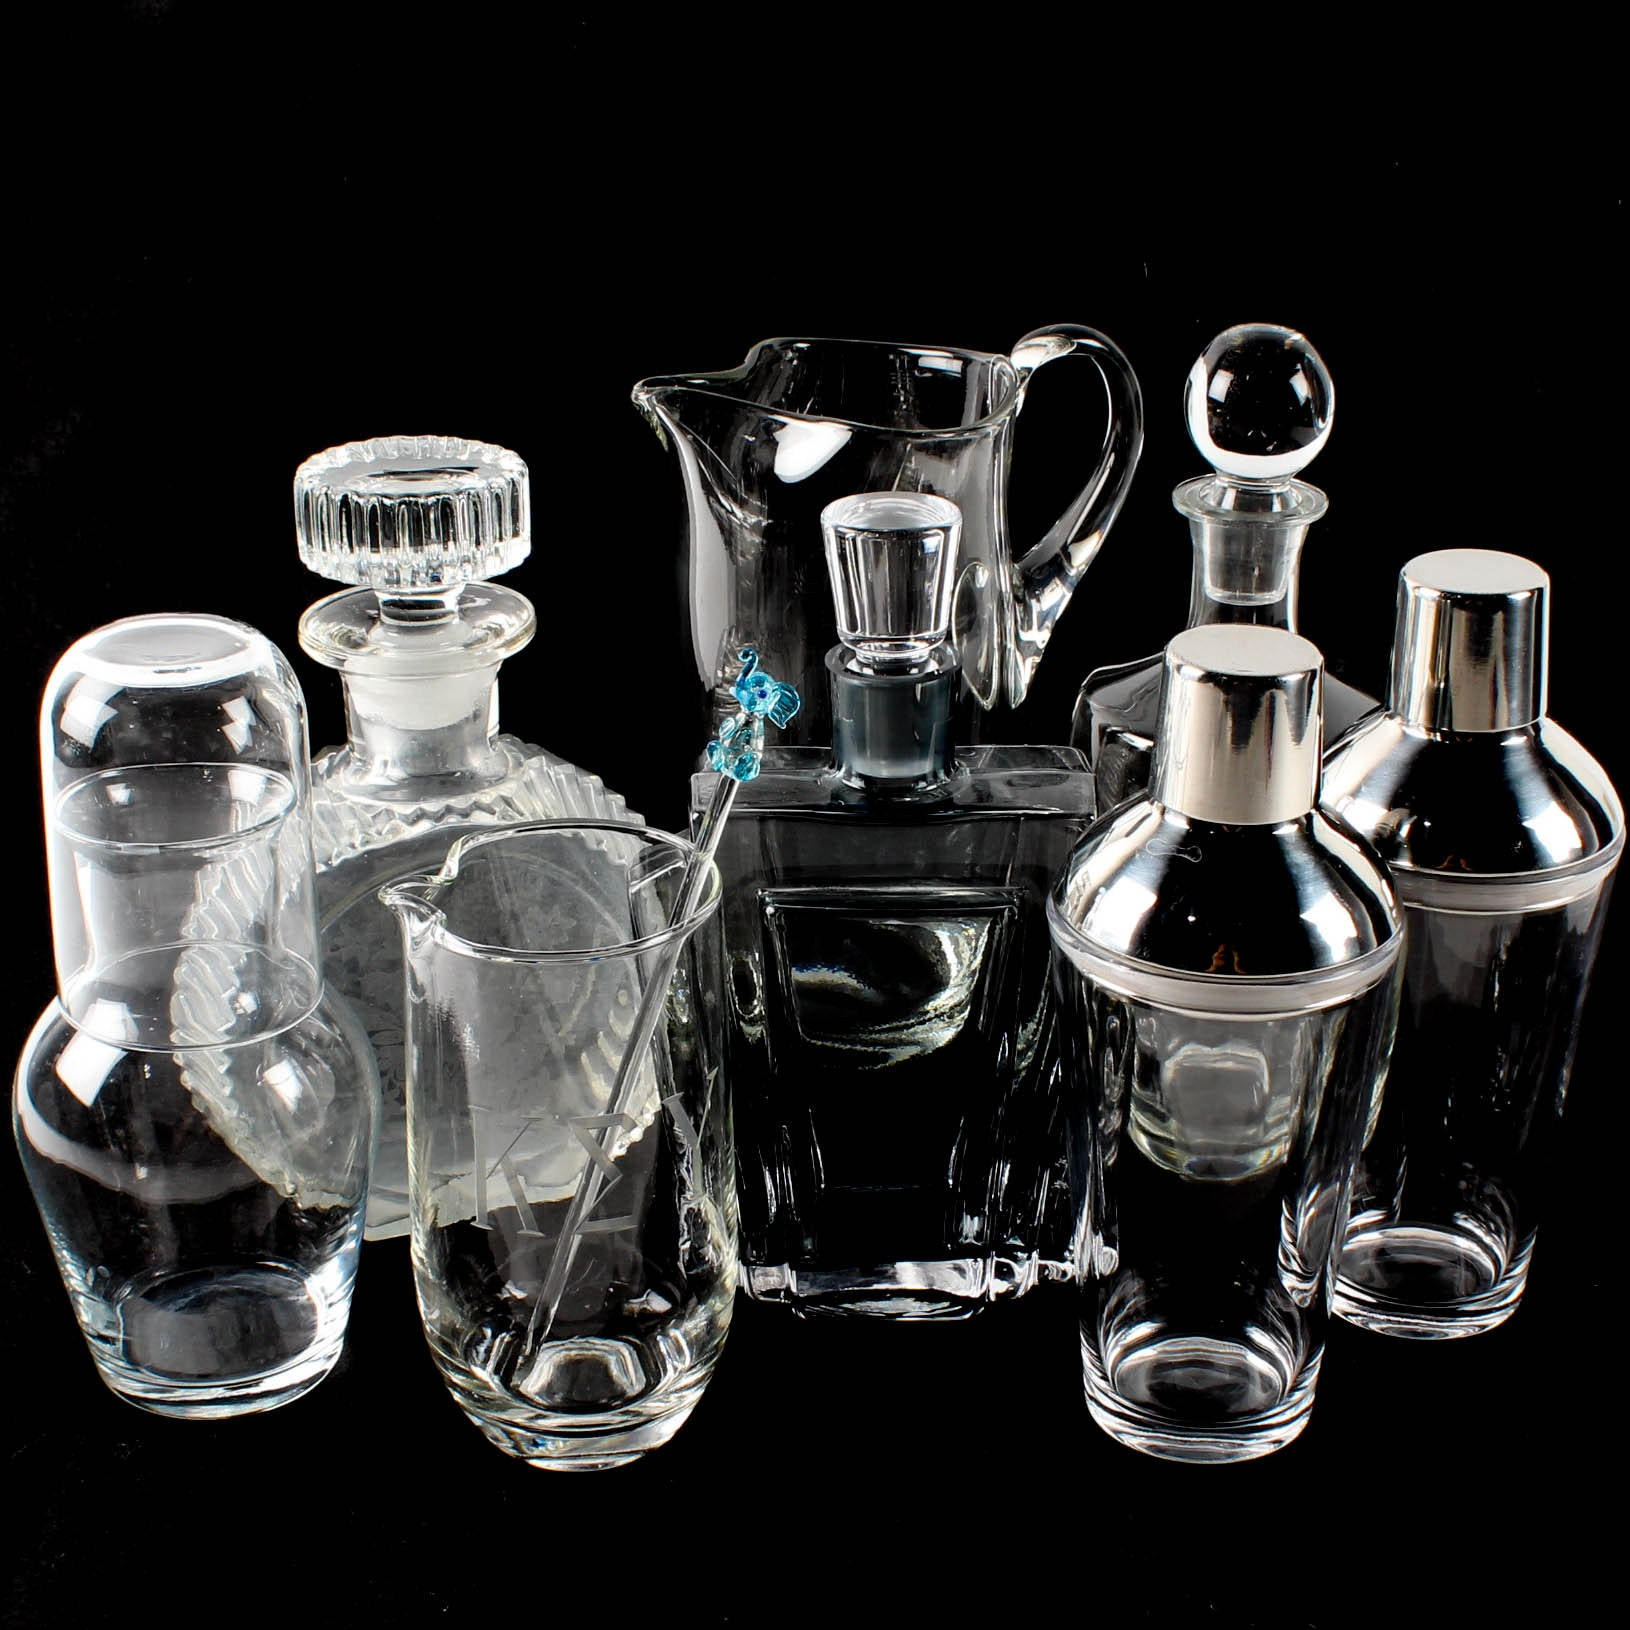 Glass Decanters and Bar Set